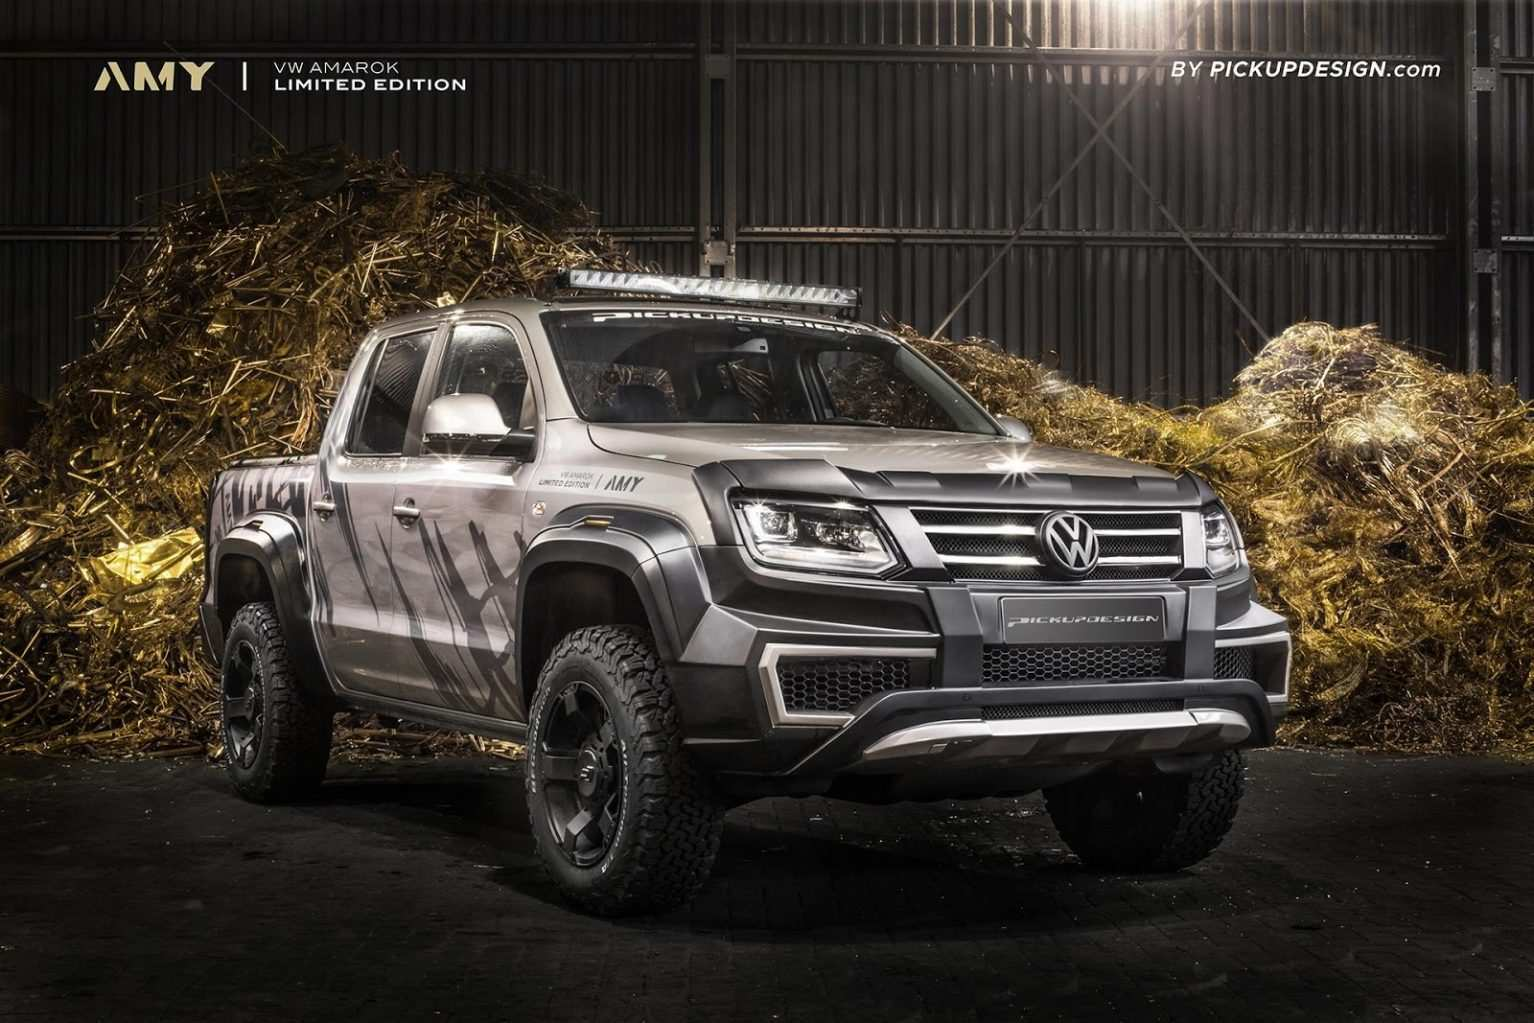 54 All New 2019 Vw Amarok Release Date for 2019 Vw Amarok